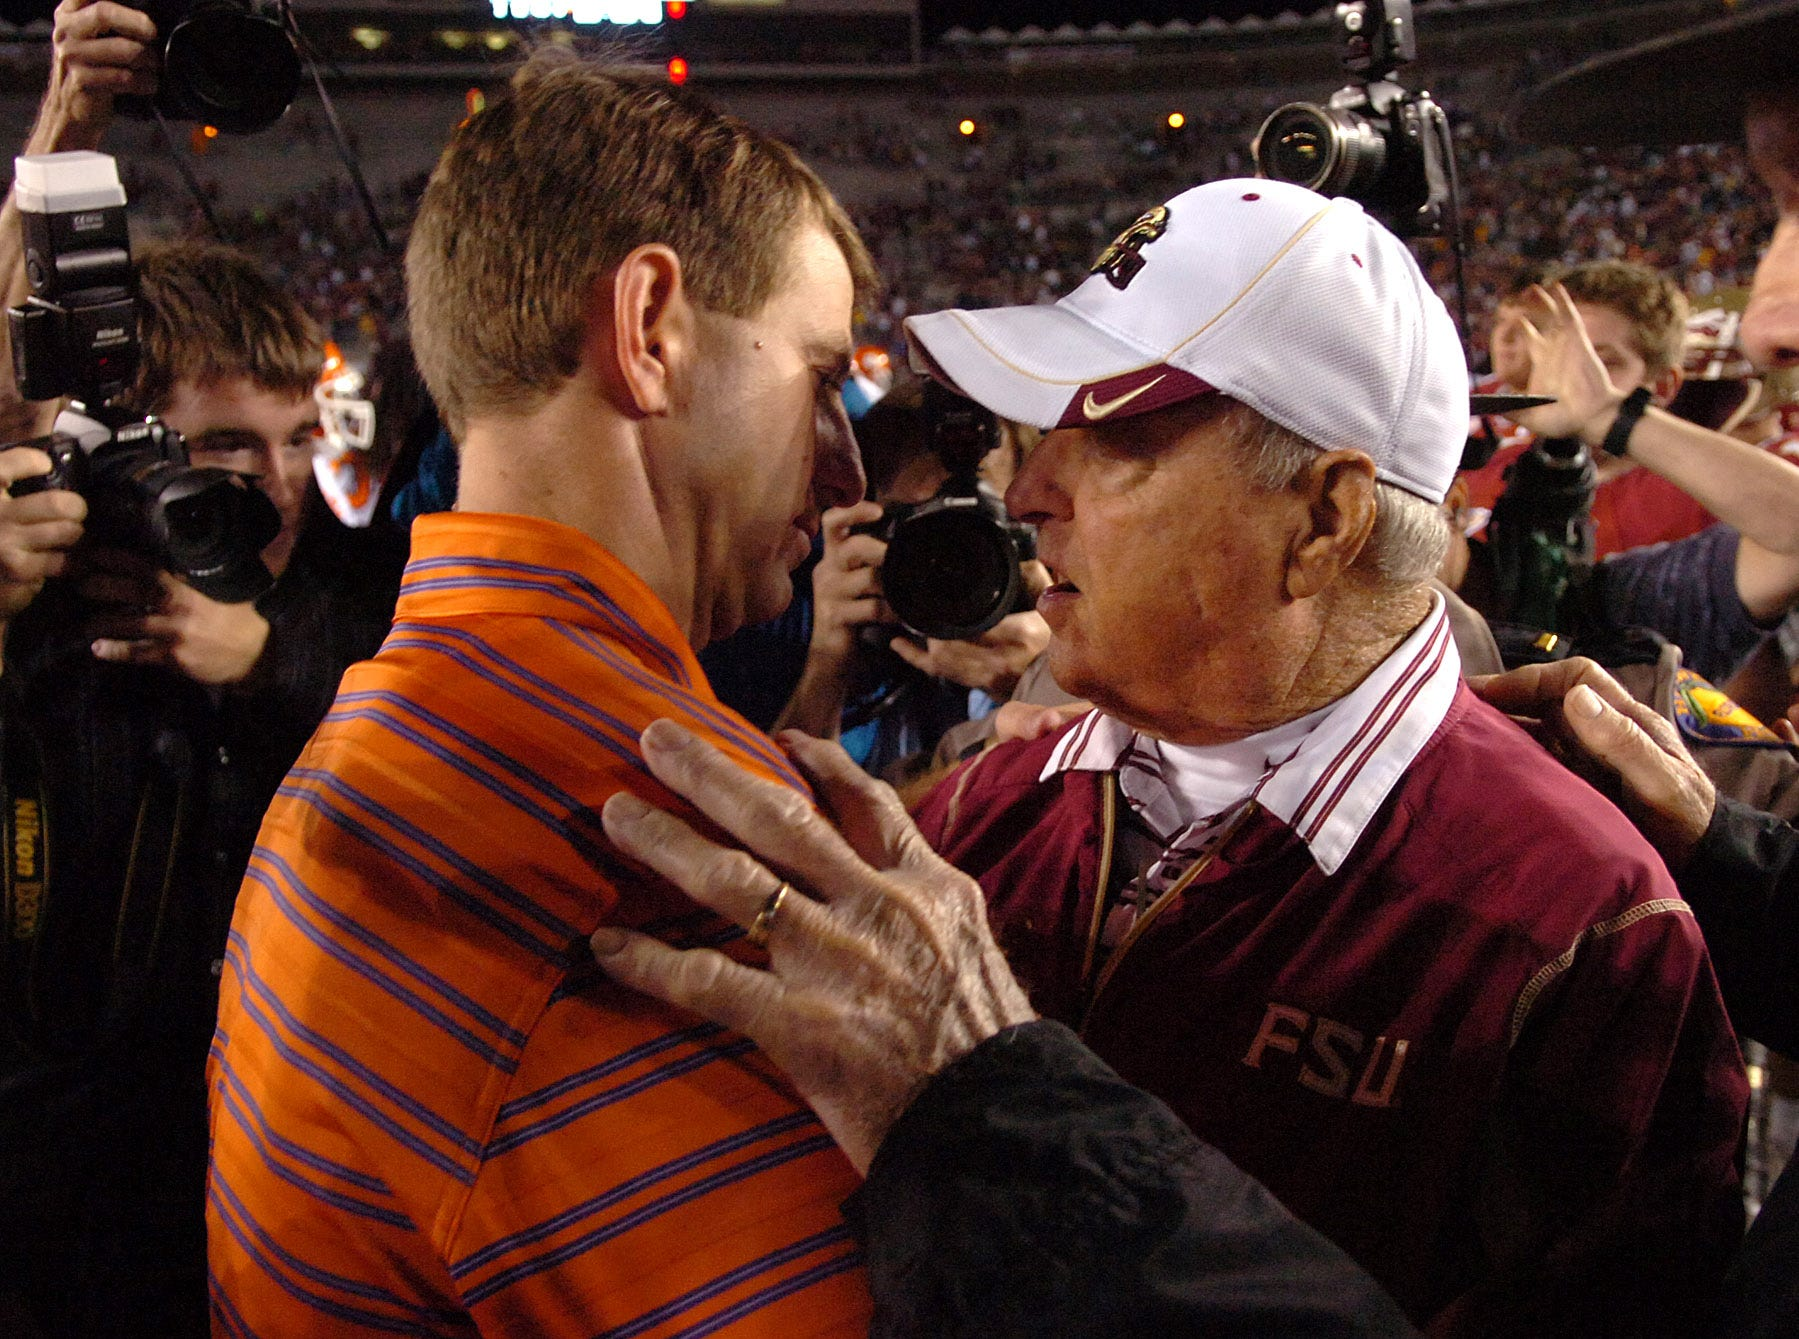 Clemson interim head coach Dabo Swinney meets with Florida State head coach Bobby Bowden at midfield after the Tigers 41-27 loss Saturday, Nov. 8, 2008 at FSU's Doak Campbell Stadium in Tallahassee, Fl.